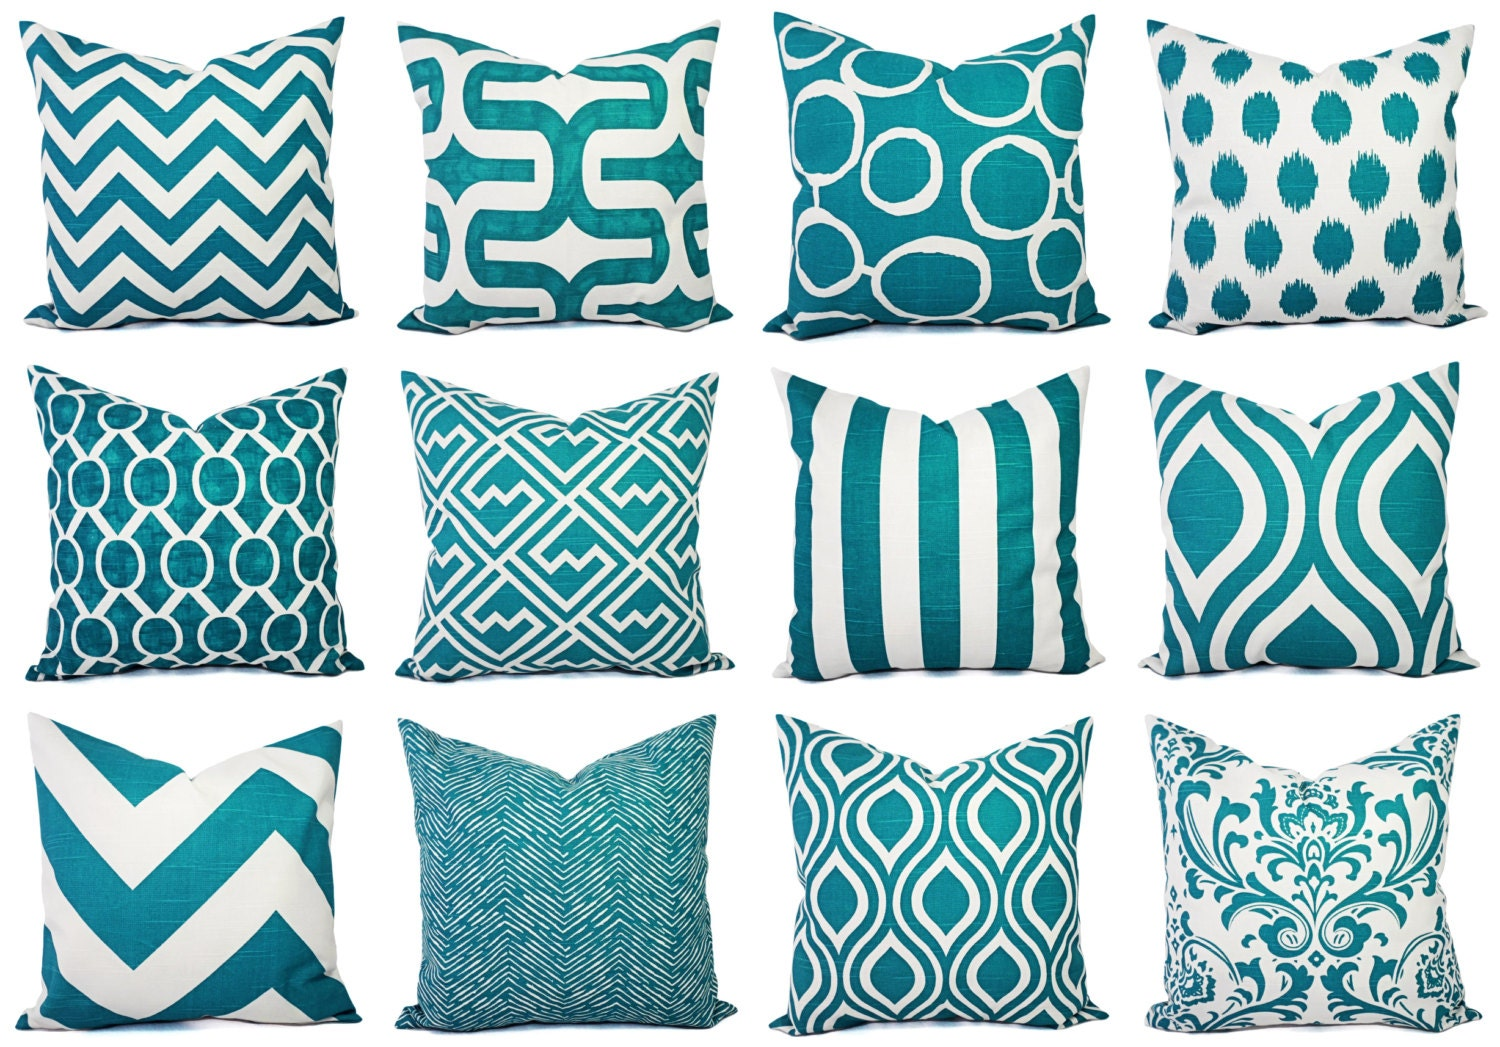 teal couch pillow covers turquoise pillow by castawaycovedecor. Black Bedroom Furniture Sets. Home Design Ideas